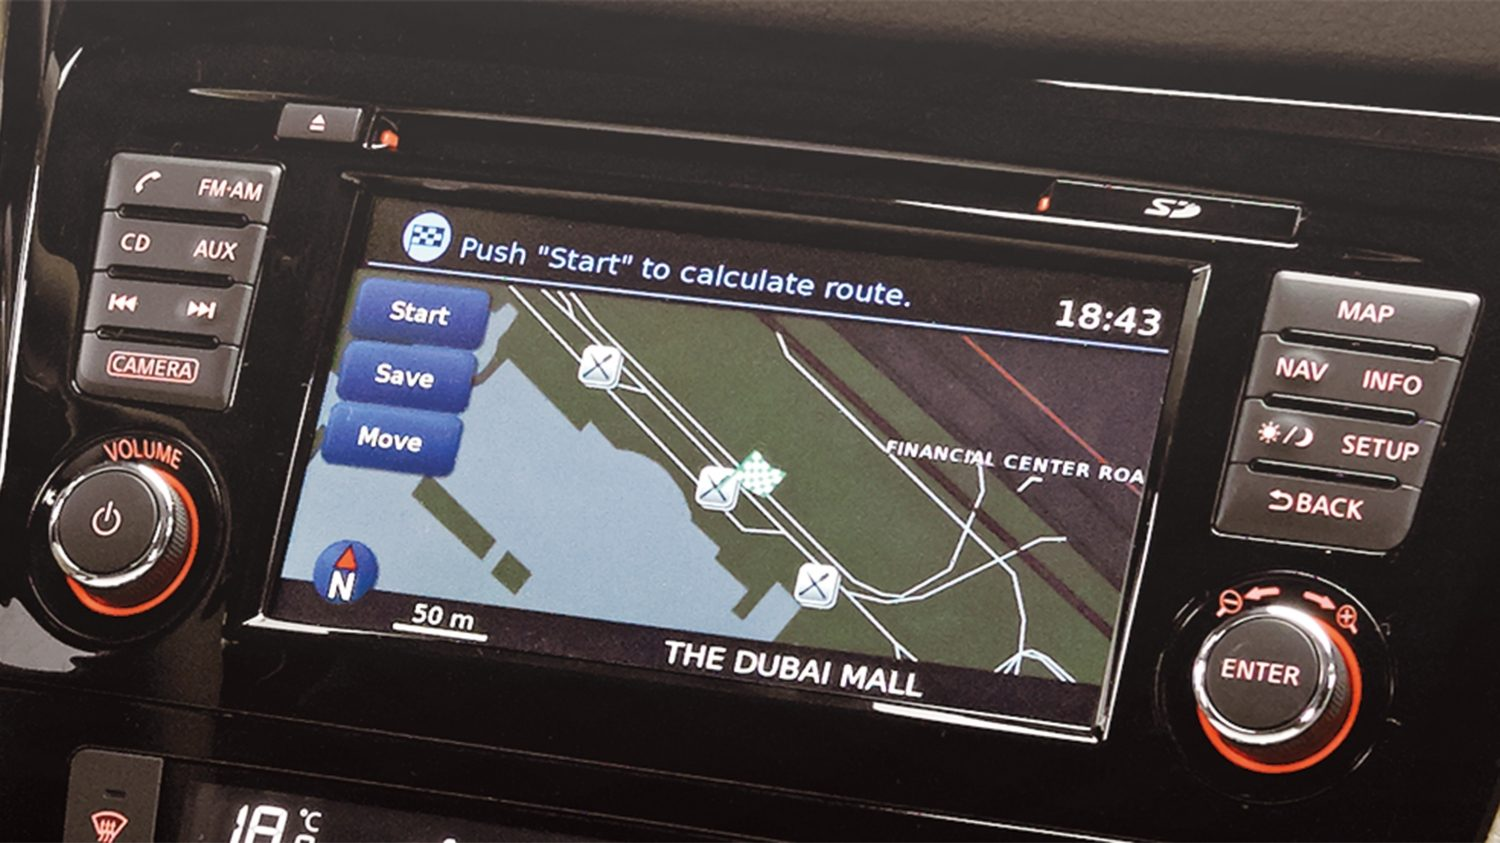 Navigation screen